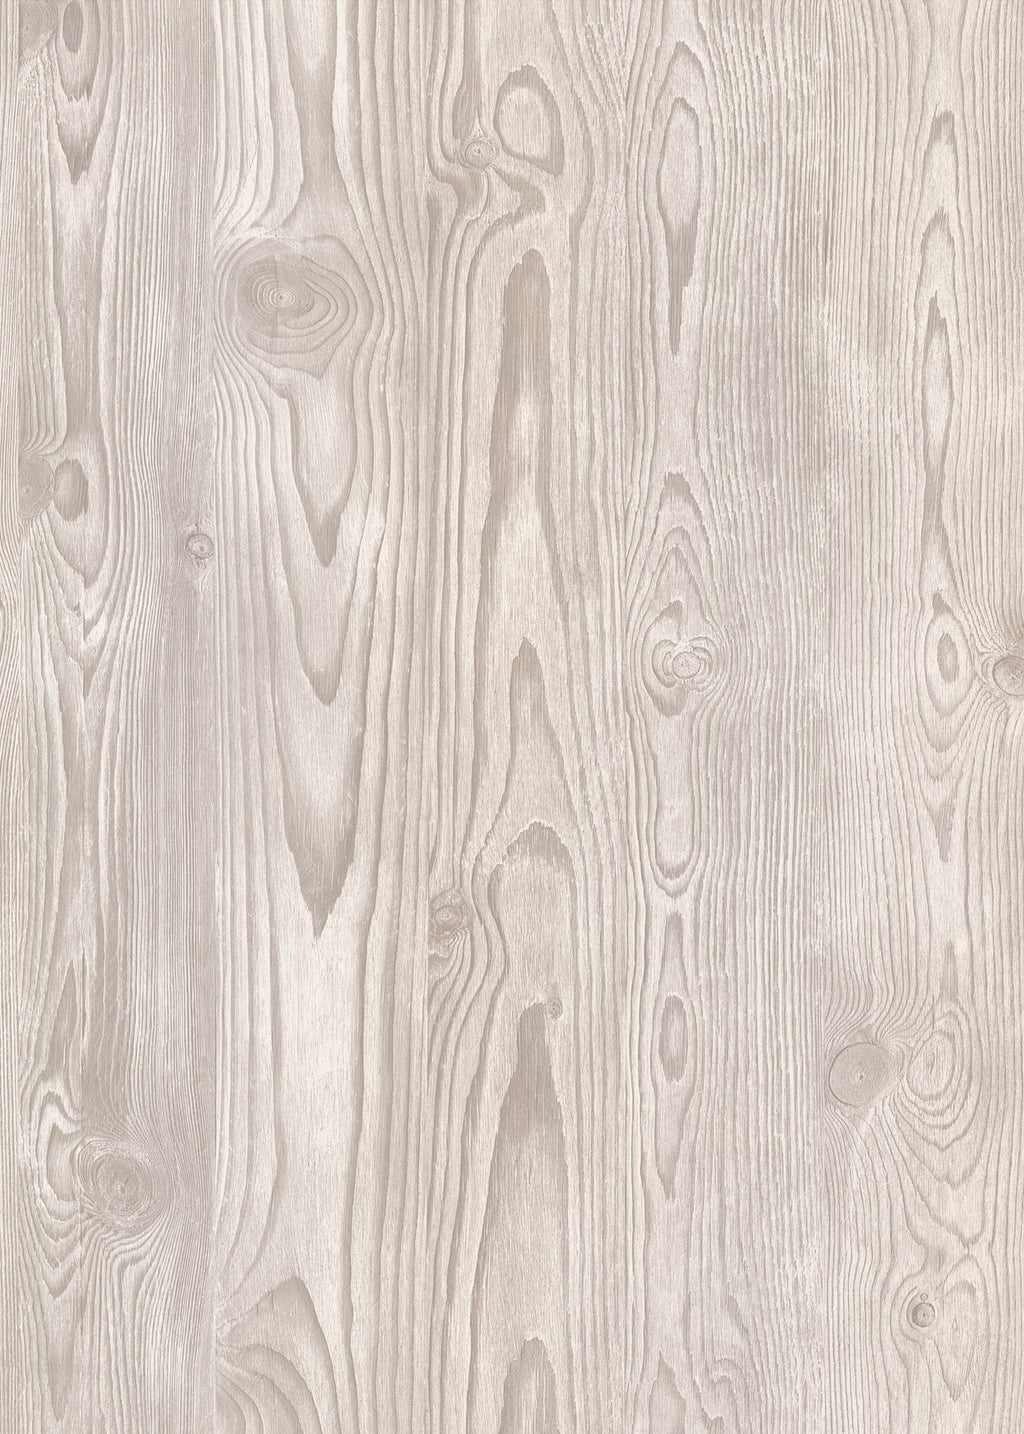 Ghost Wood Vinyl Photography Backdrop by Club Backdrops